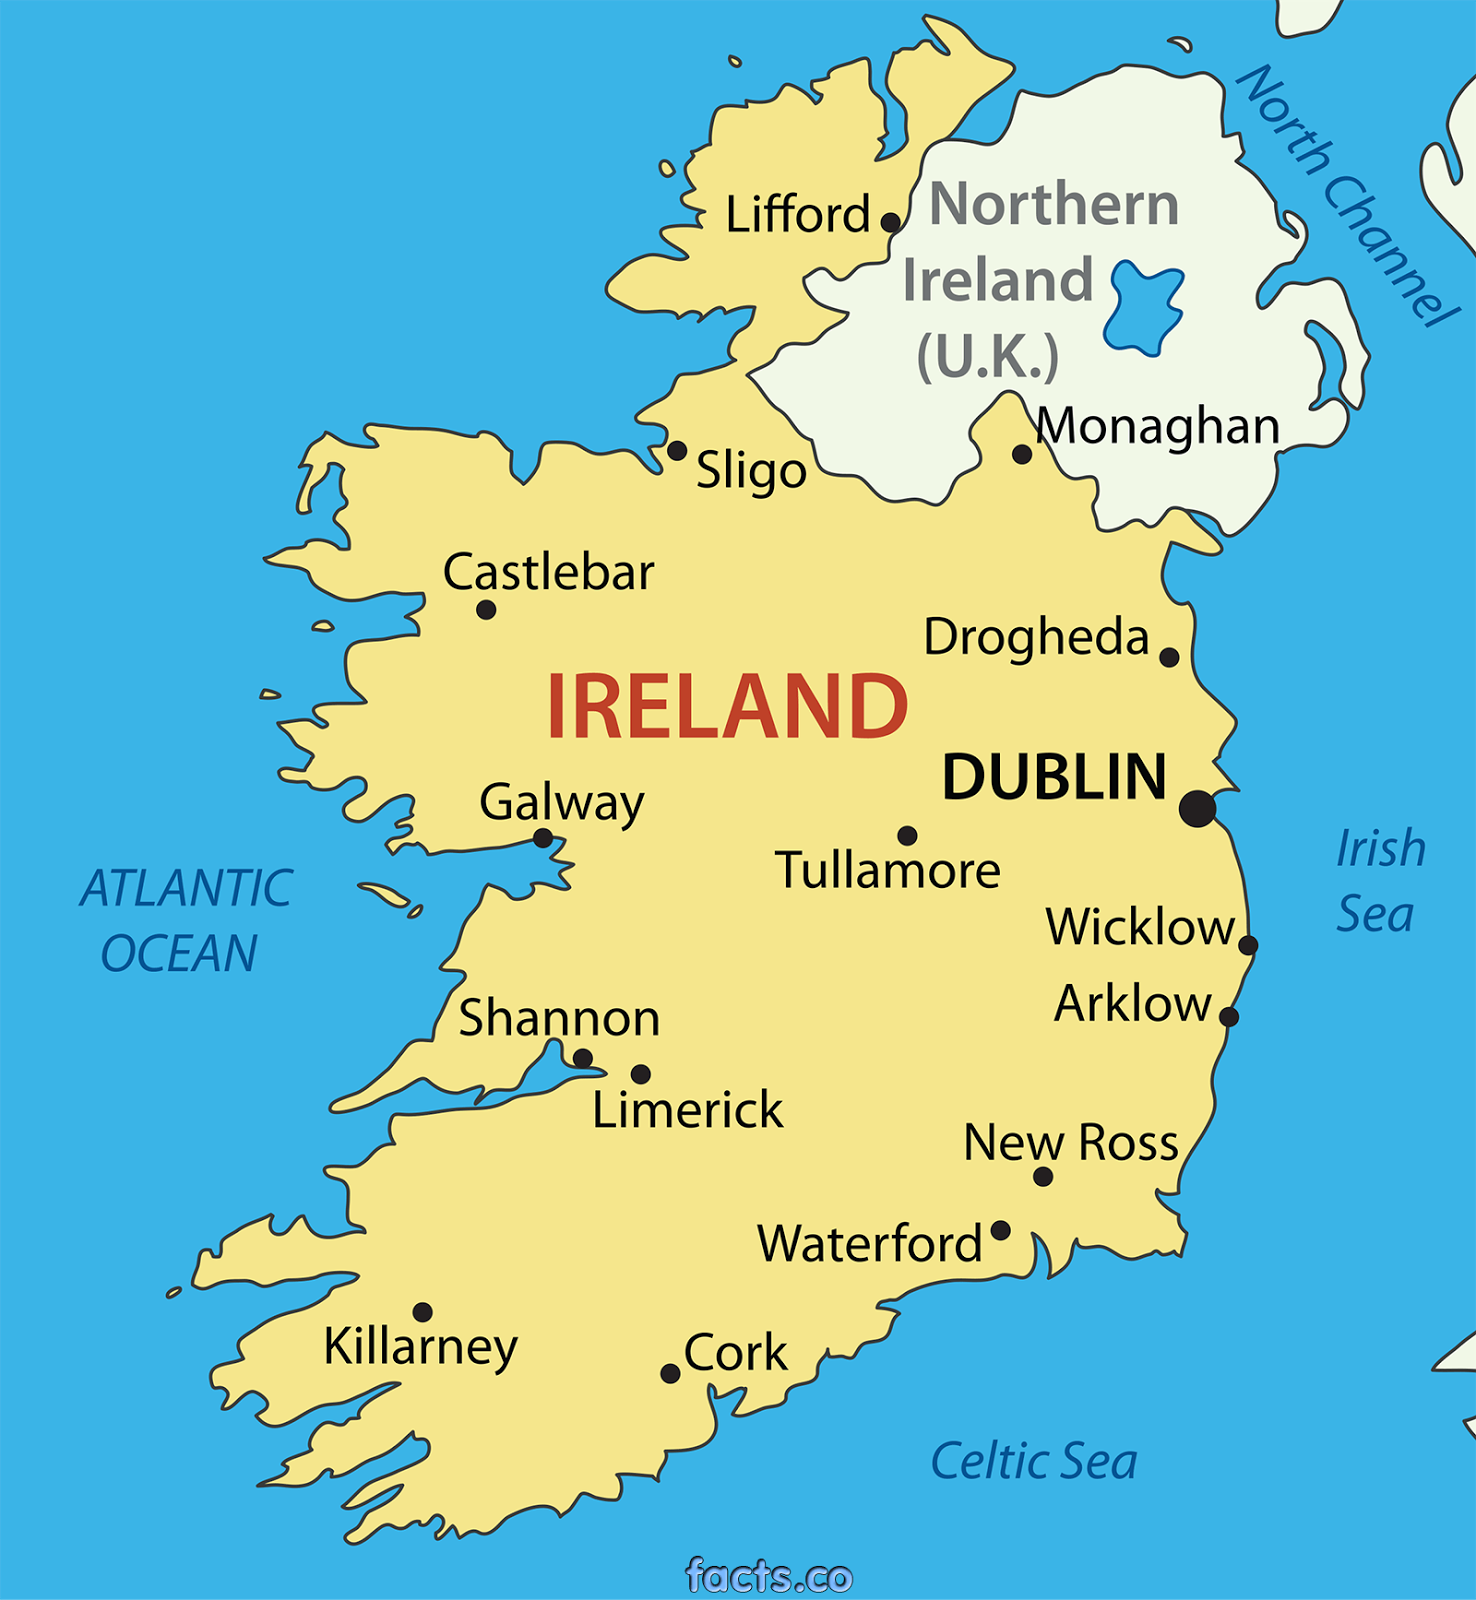 Map of Ireland Geography City | Ireland Map | Geography ... City Map Of Ireland on city map of luxembourg, city map of bosnia and herzegovina, city map switzerland, city map of jersey, city map of aruba, city map of southern chile, city map of bahamas, city map of myanmar, city map of libya, city map of kuwait, city map of bahrain, city map of united states of america, city map of latin america, city map of western usa, city map of slovakia, city map of tuscany, city map japan, city map of slovenia, city map of the carolinas, city map of el salvador,